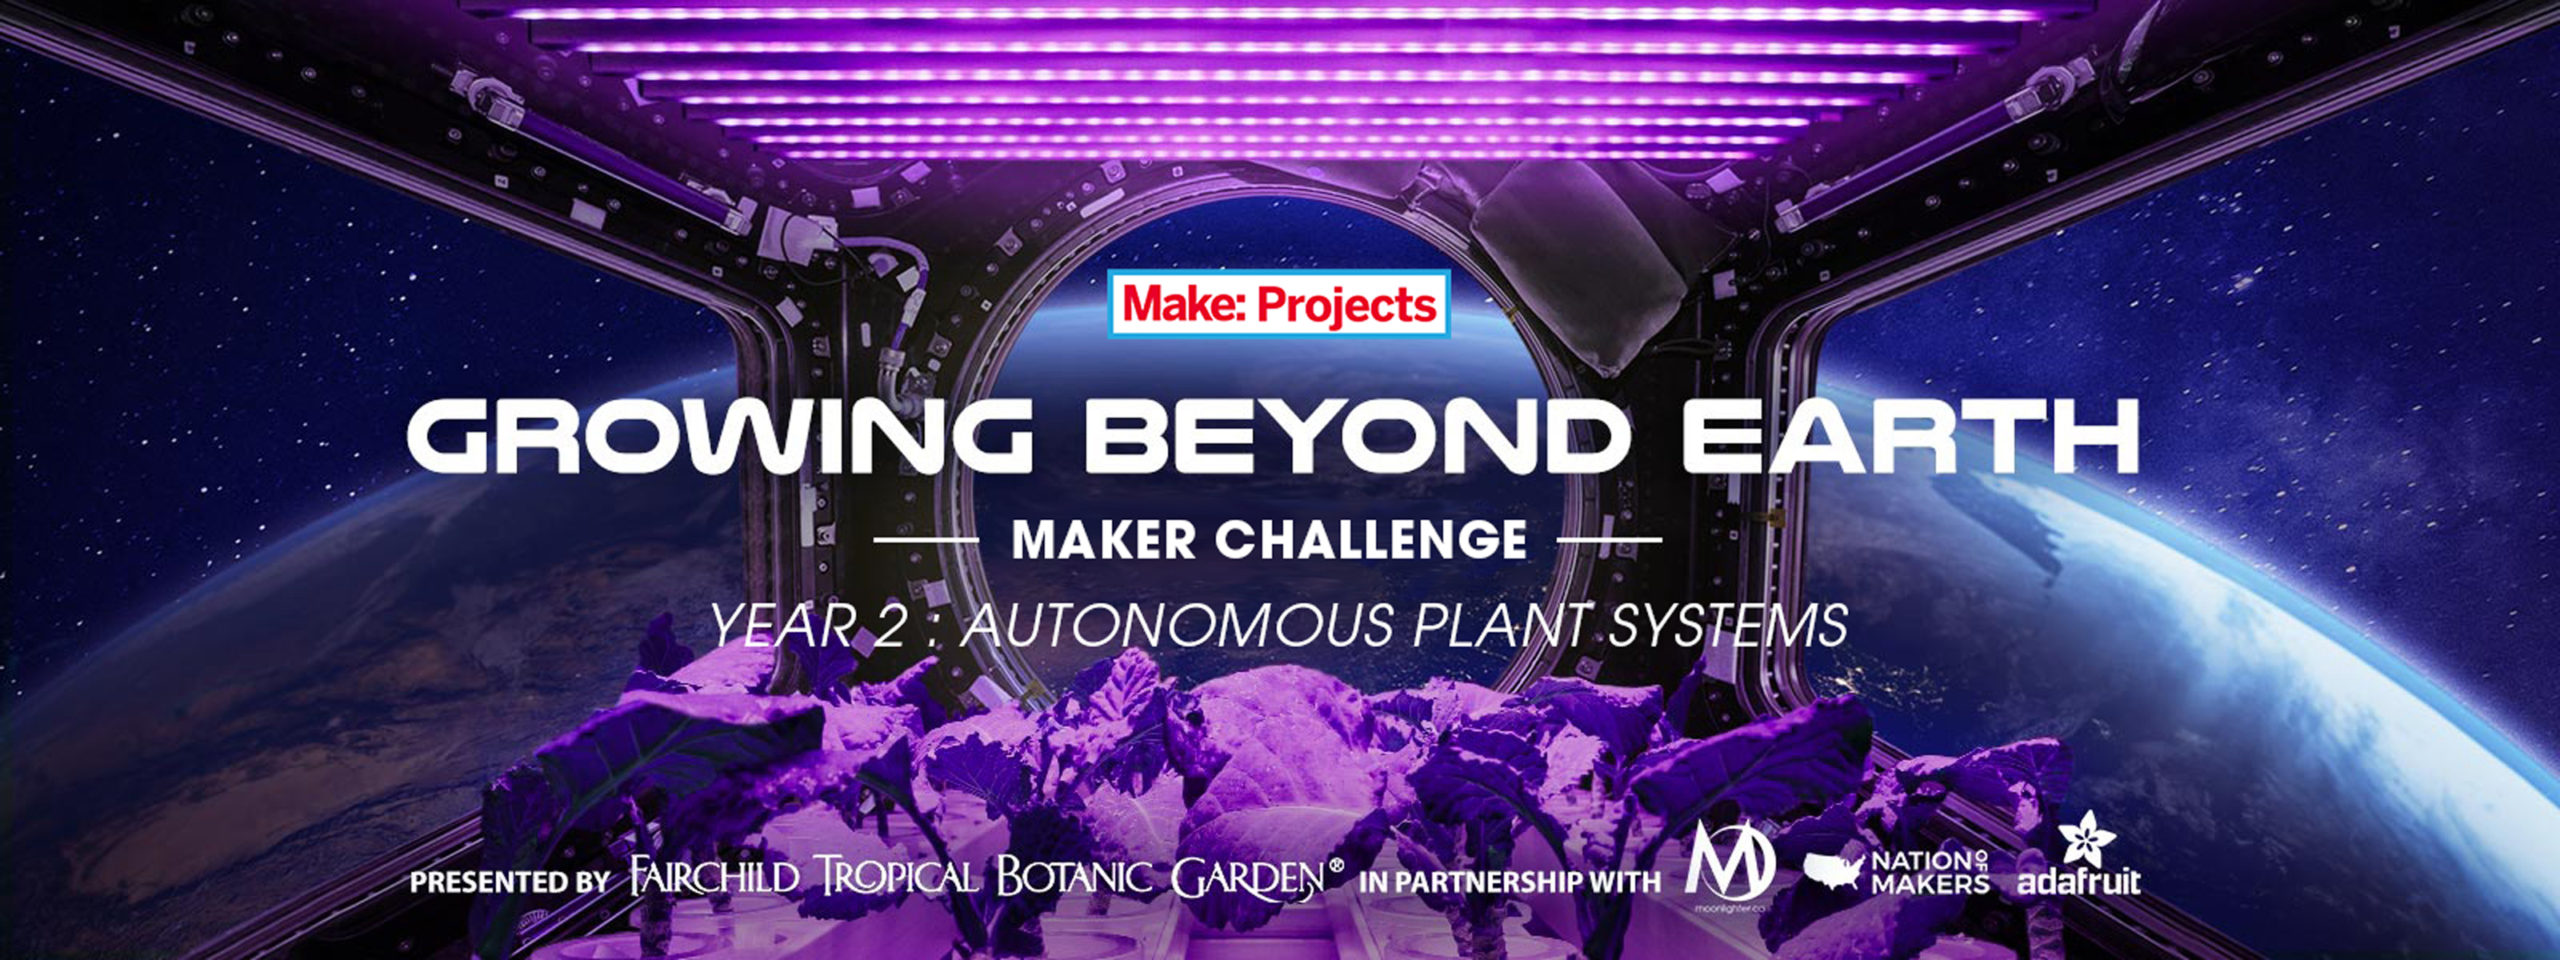 Tis The Season For Maker Contests: Space Plants and Holiday Decorations